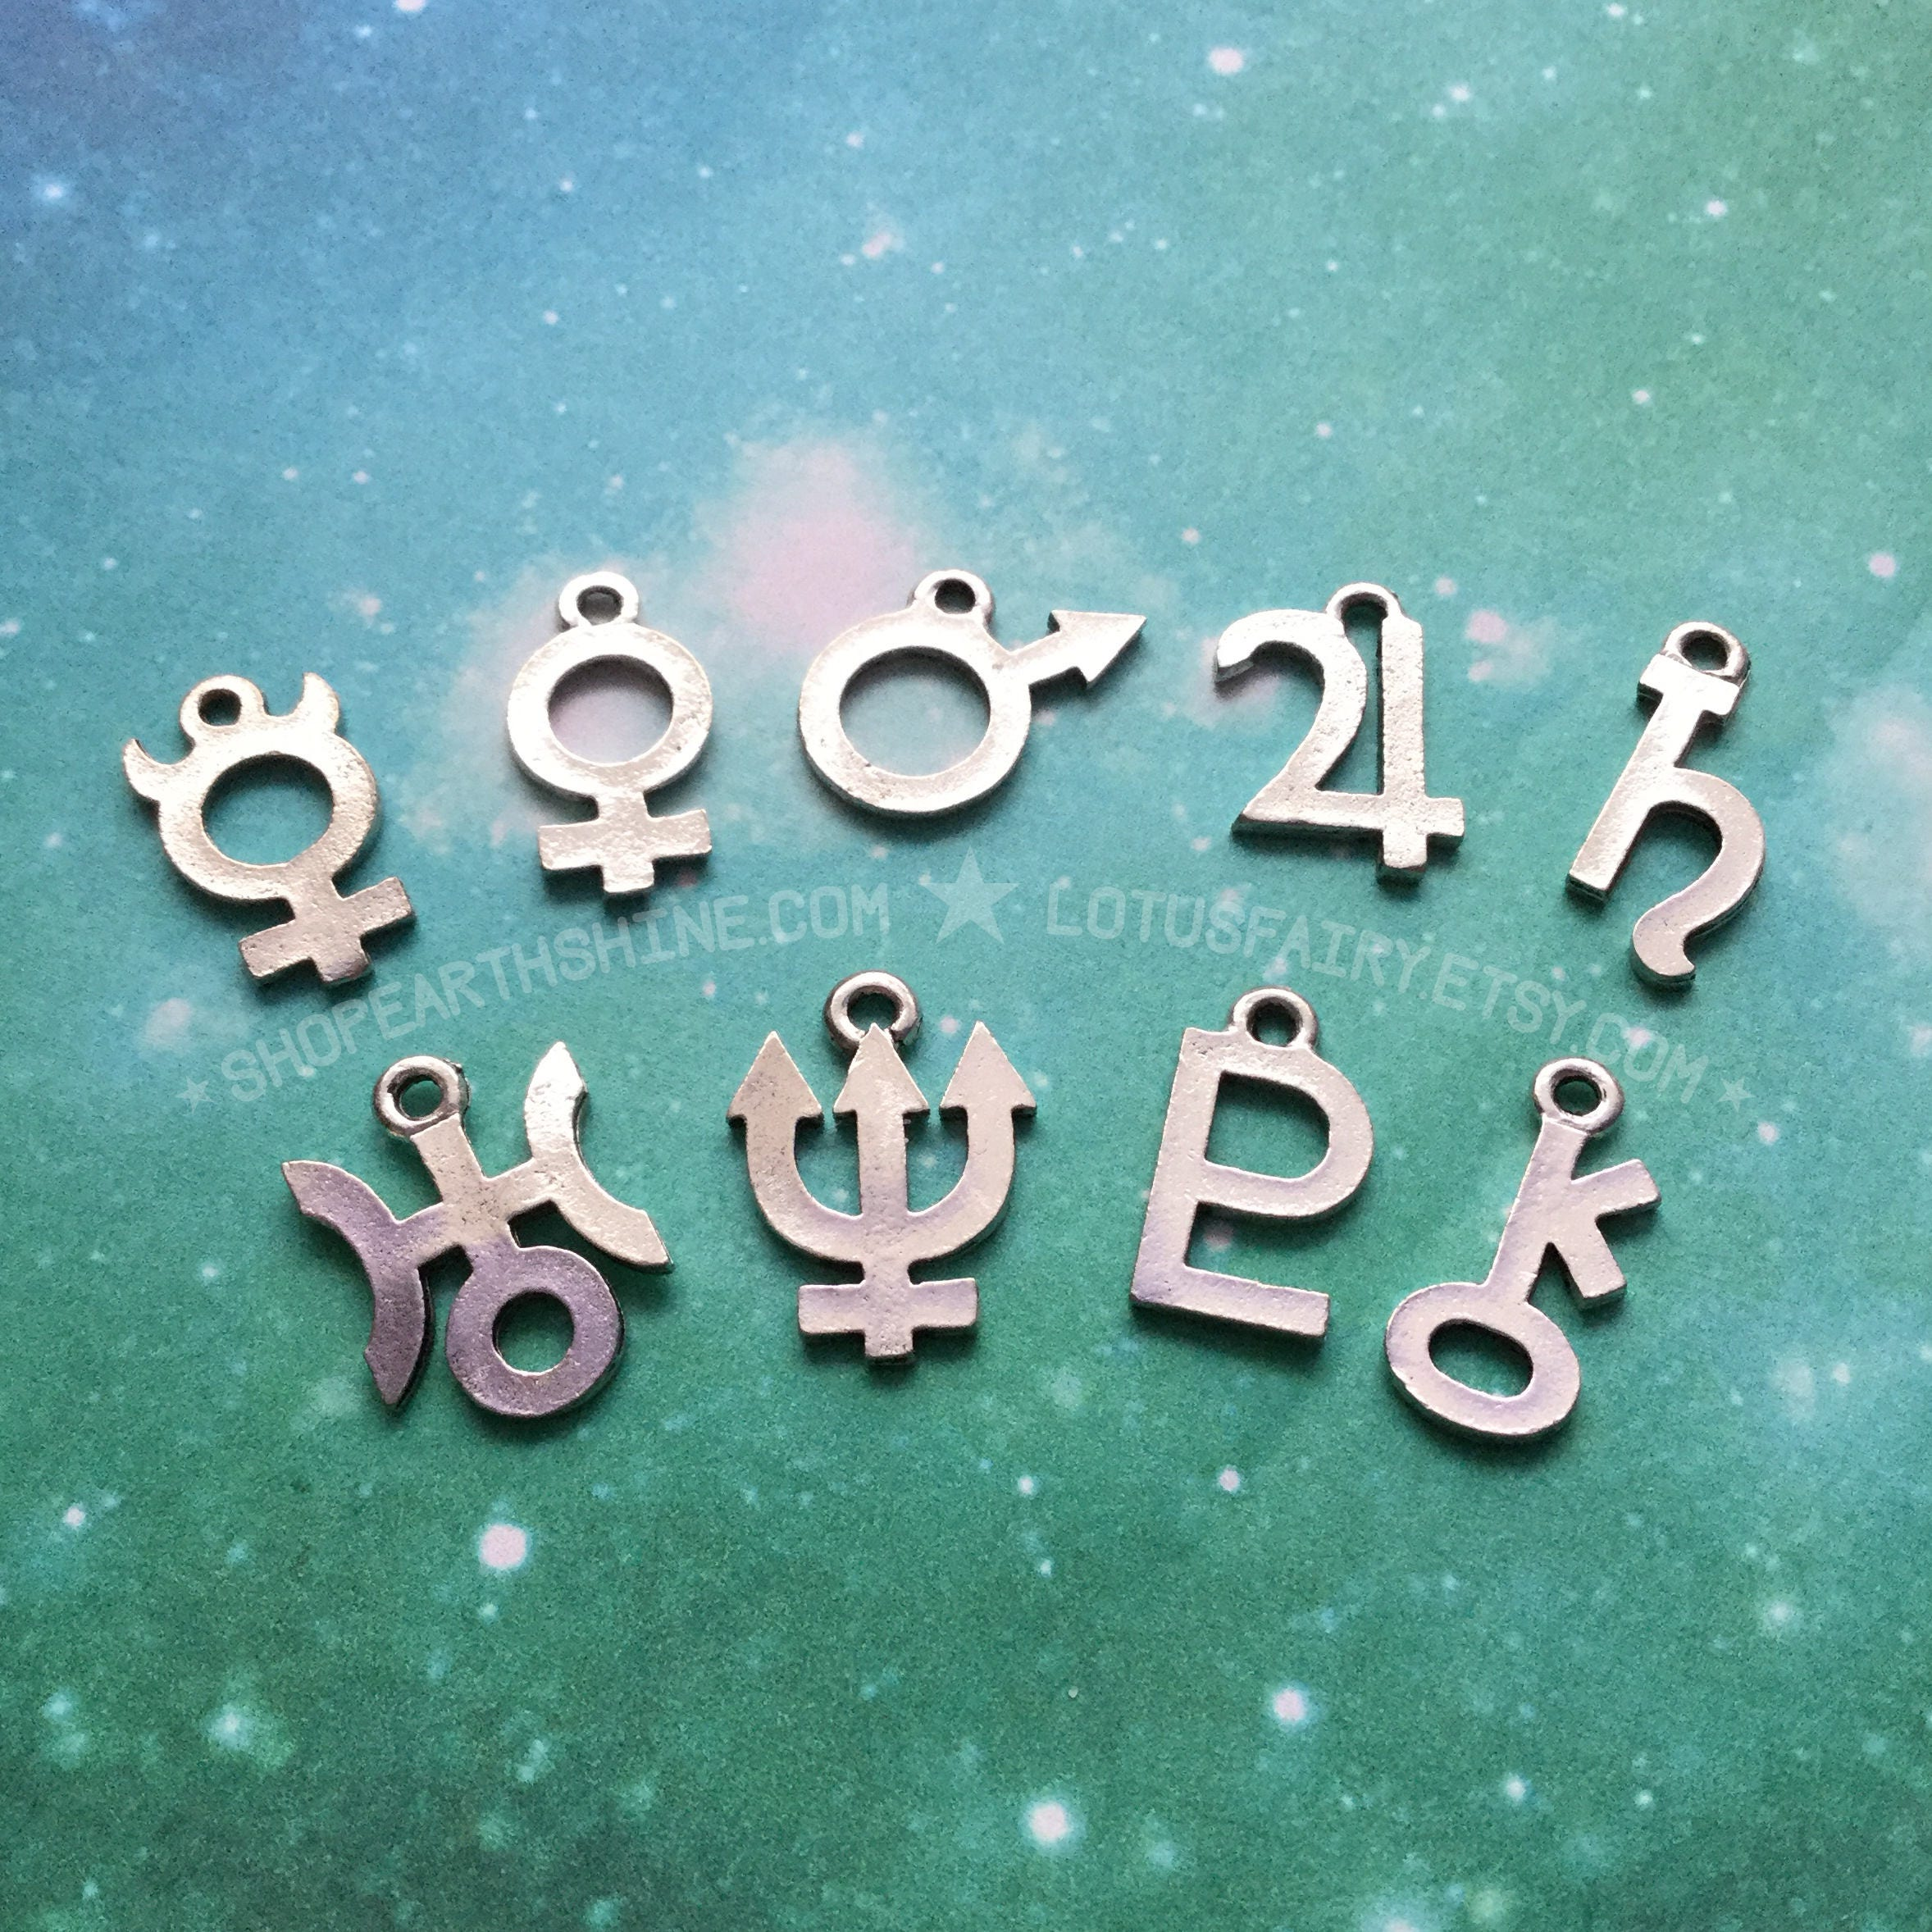 Planetary symbol glyph necklace 18mm jupiter saturn neptune planetary symbol glyph necklace 18mm jupiter saturn neptune symbols 18mm pendant charms buycottarizona Image collections